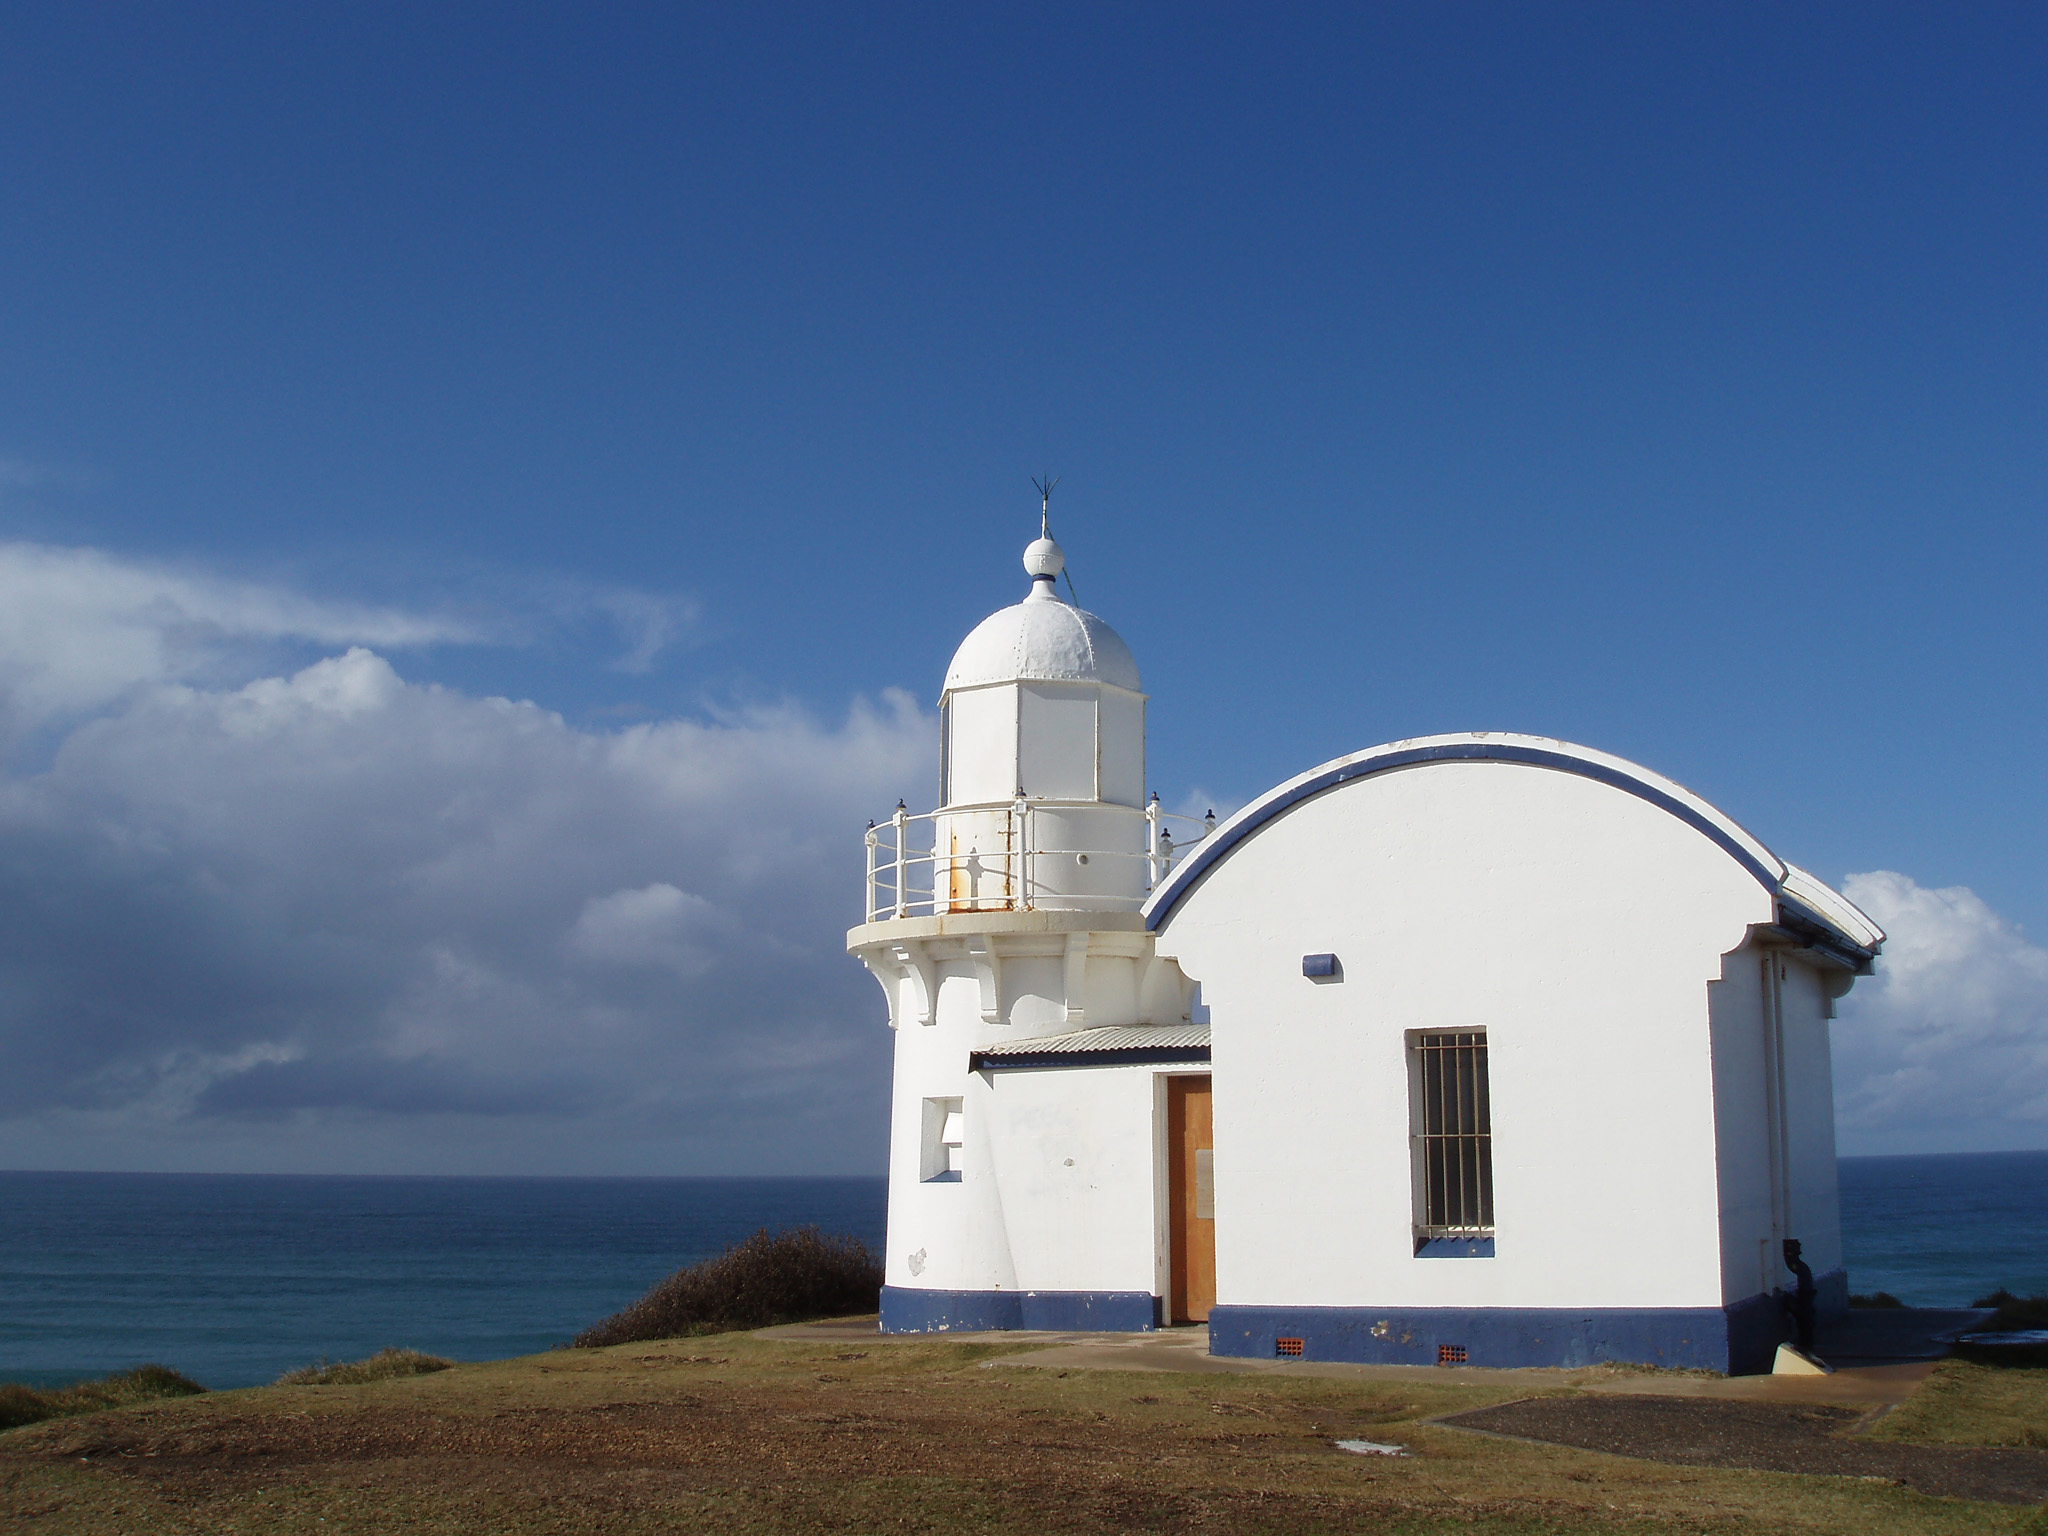 Vintage Style White Lighthouse Structure at Port Macquarie with Overlooking Beach View on Blue Sky Background.